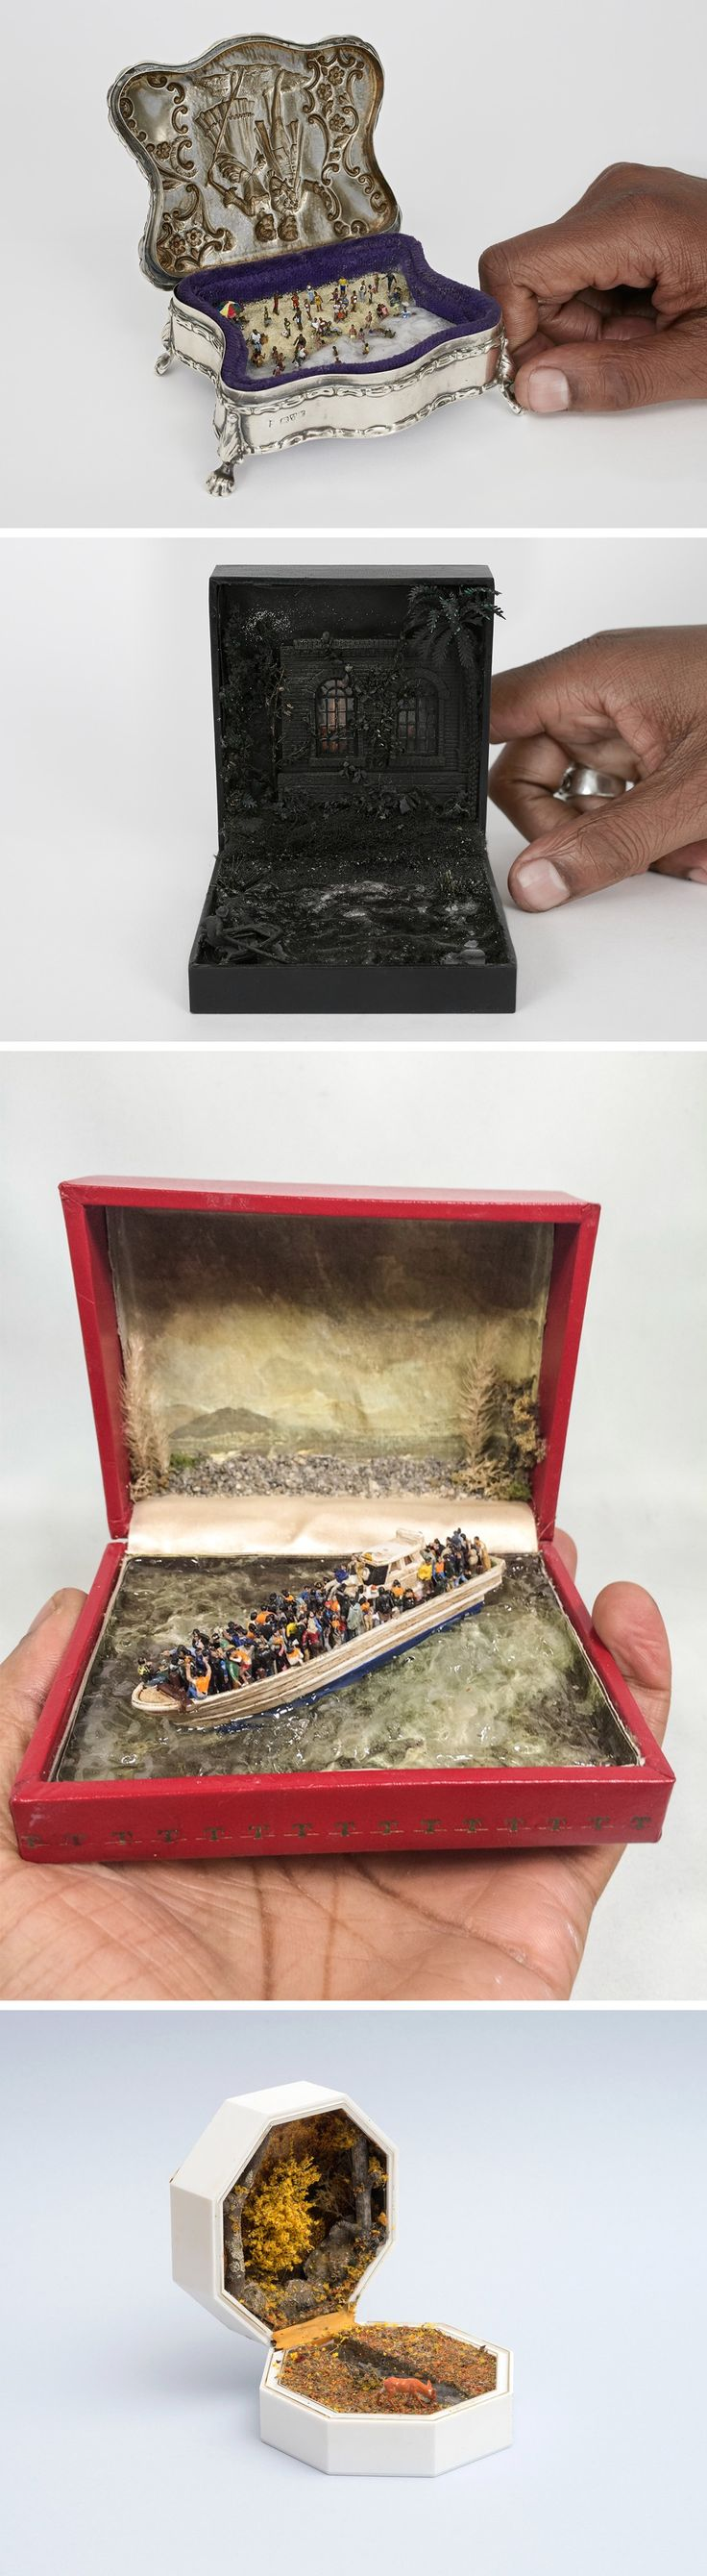 New Unexpected Miniature Scenes Staged Inside Jewelry Boxes by Curtis Talwst Santiago